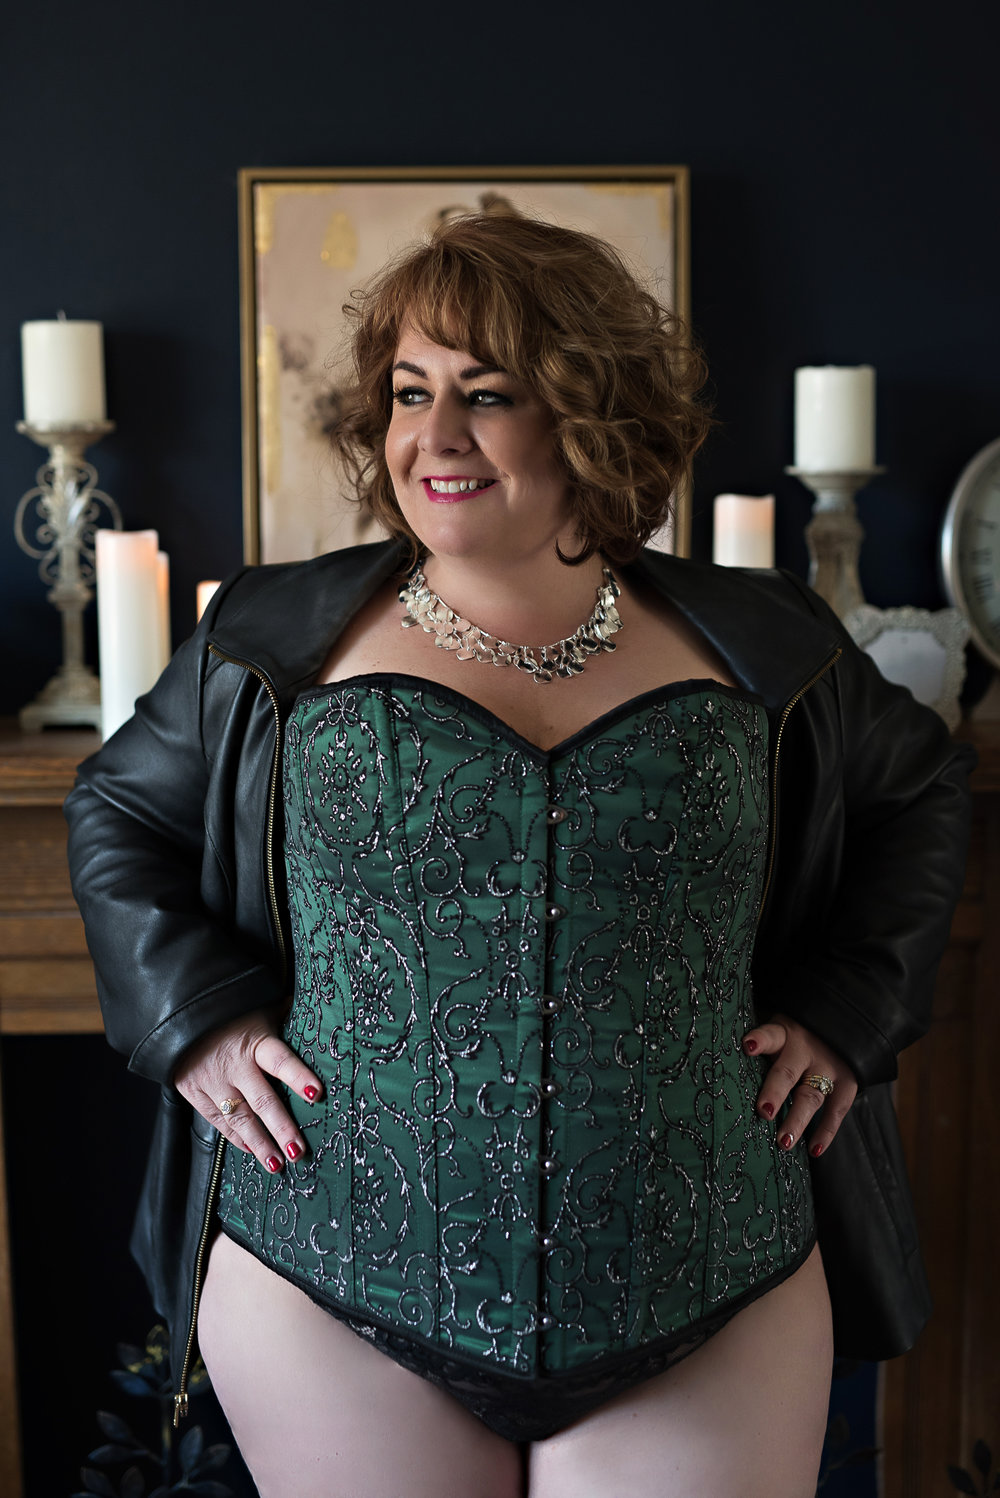 Denver boudoir photo of plus size woman in green corset and leather jacket